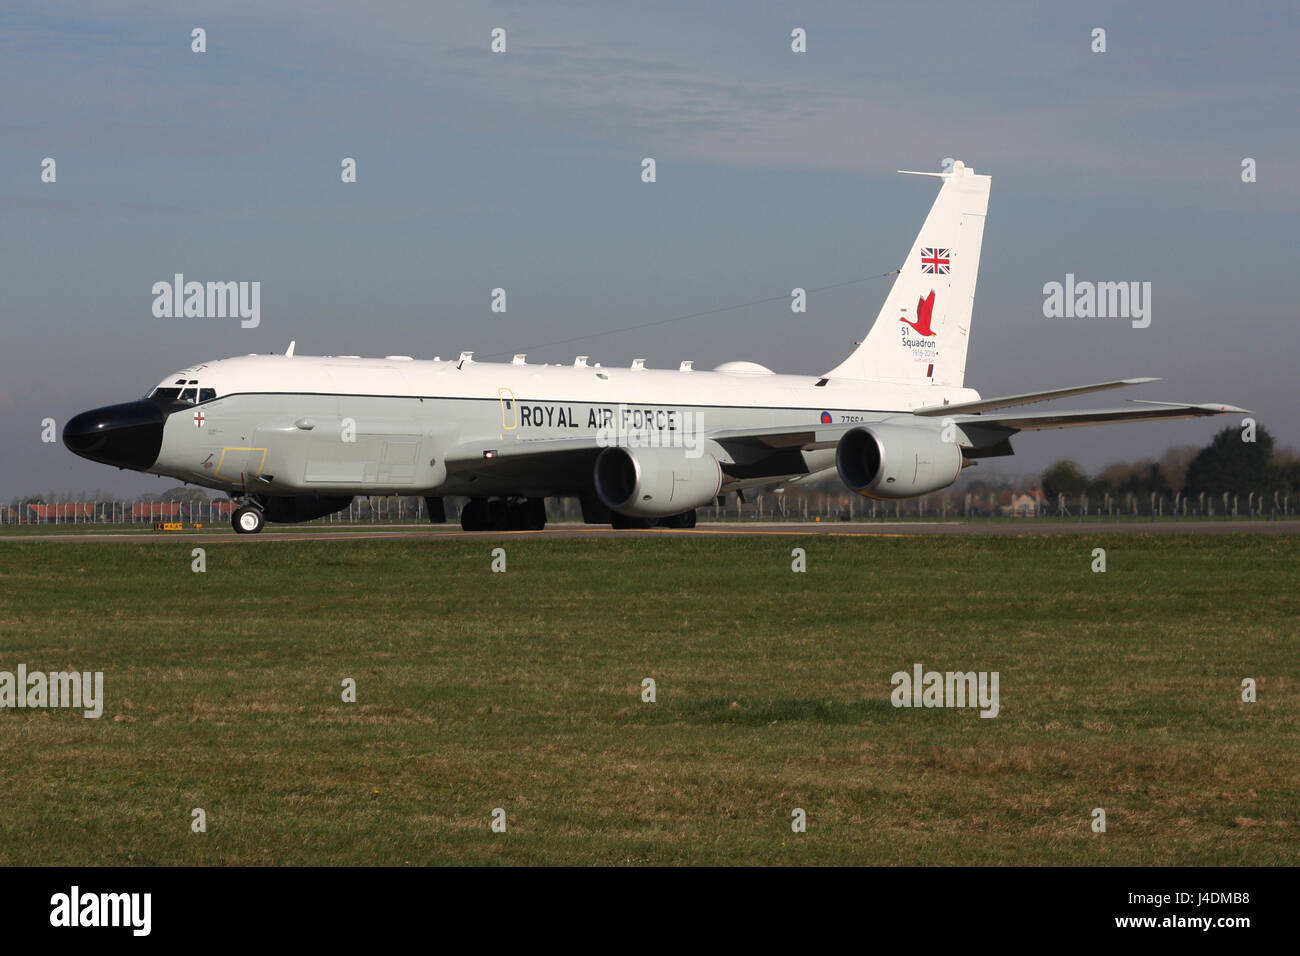 RAF RC135 AIRSEEKER RIVET JOINT Stock Photo